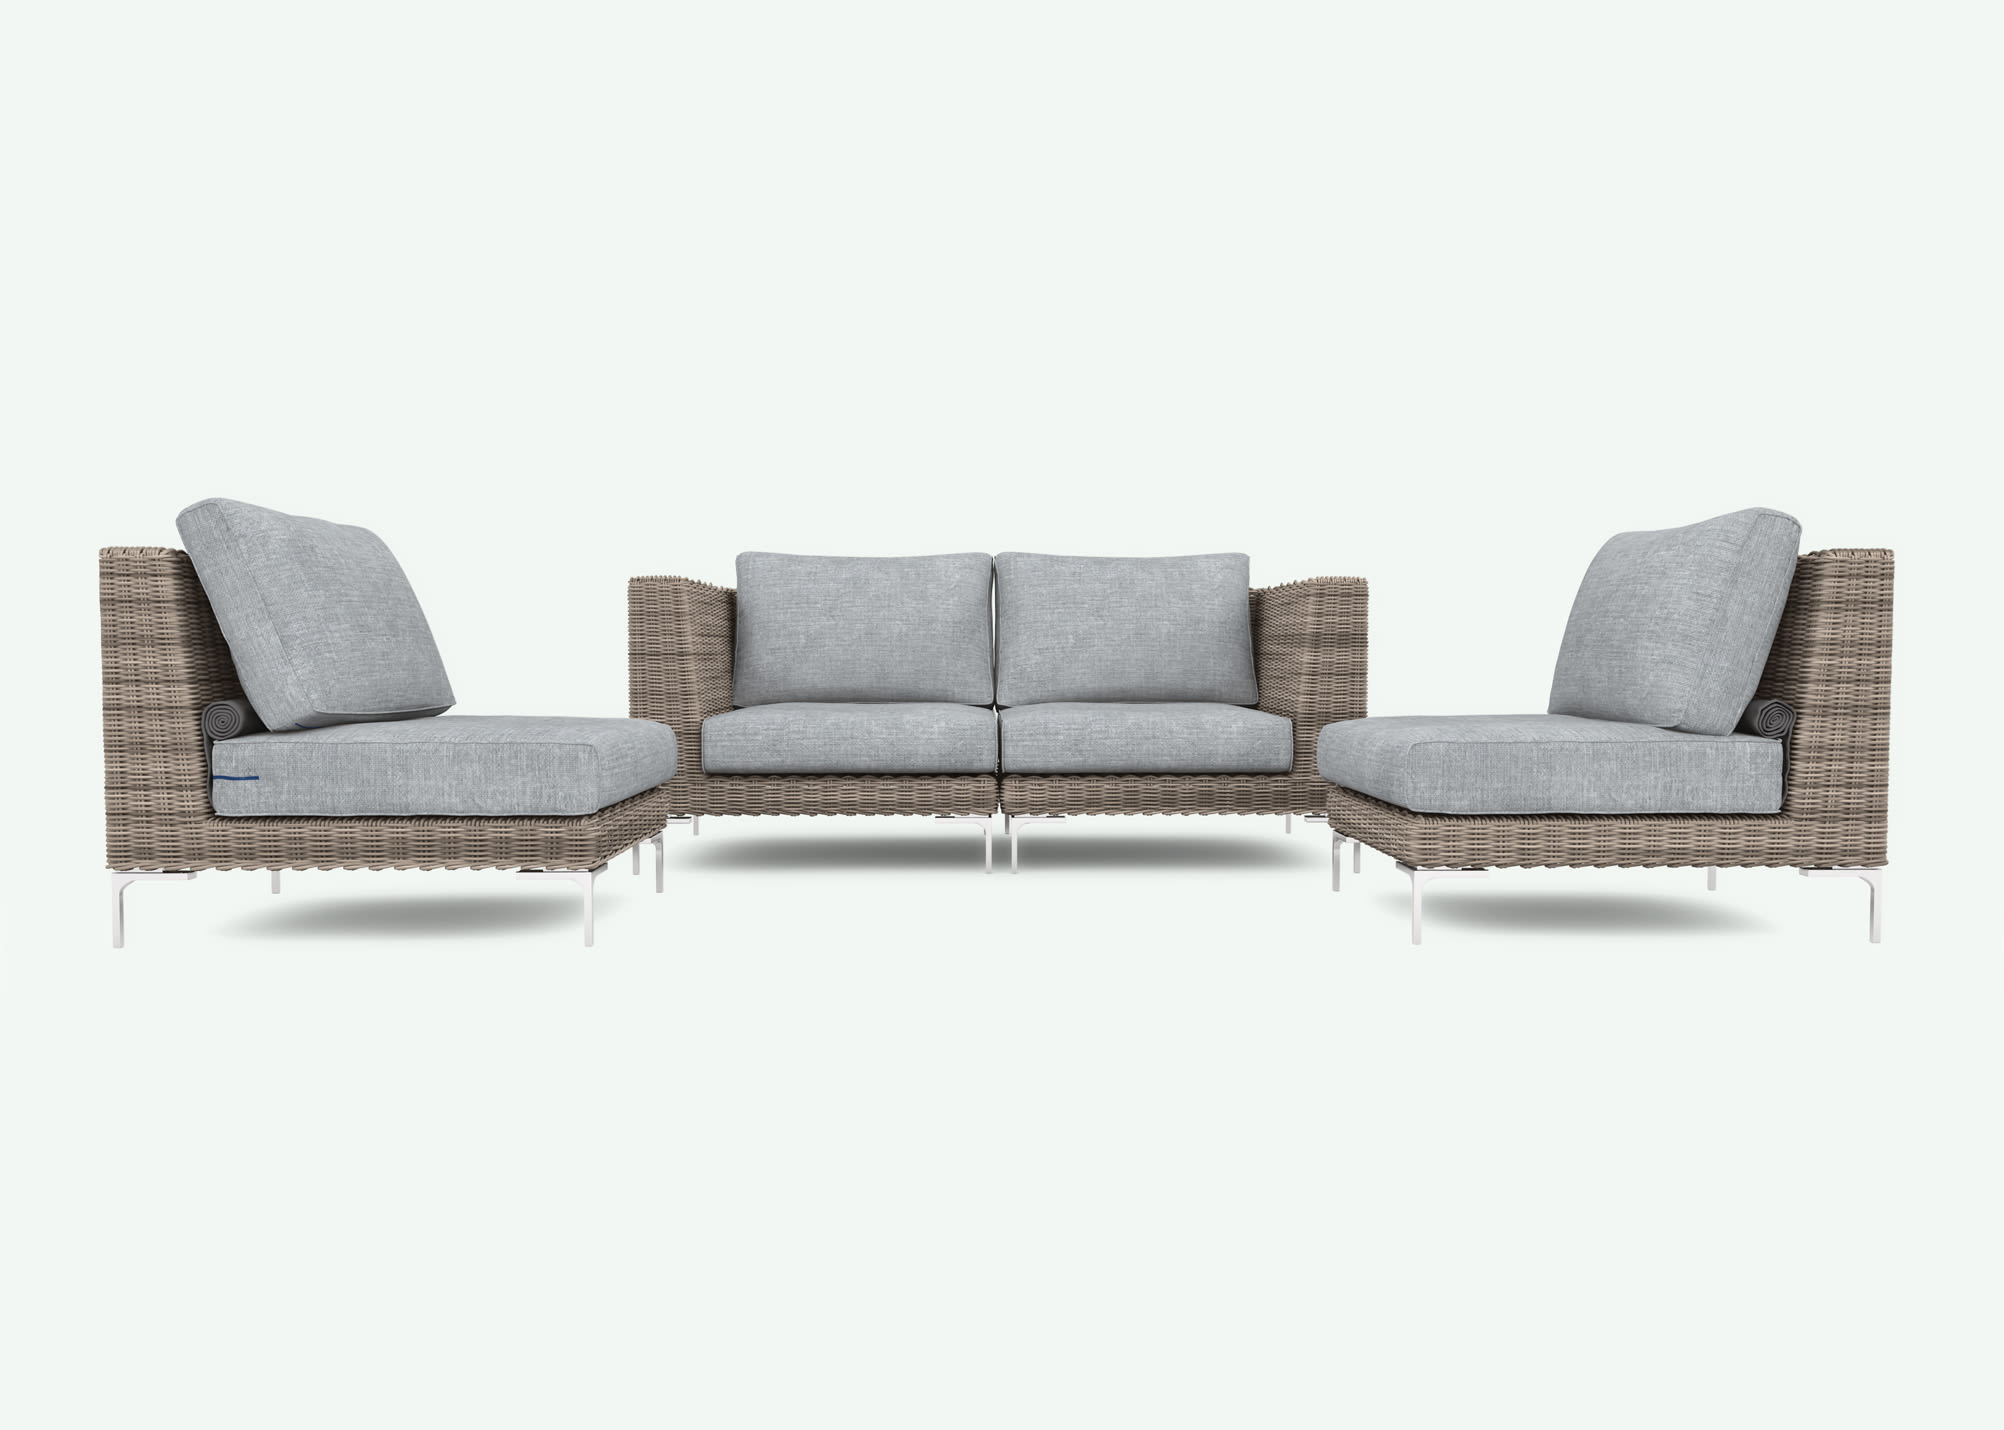 Peachy Outer The Most Comfortable Durable Outdoor Sofa Home Interior And Landscaping Palasignezvosmurscom